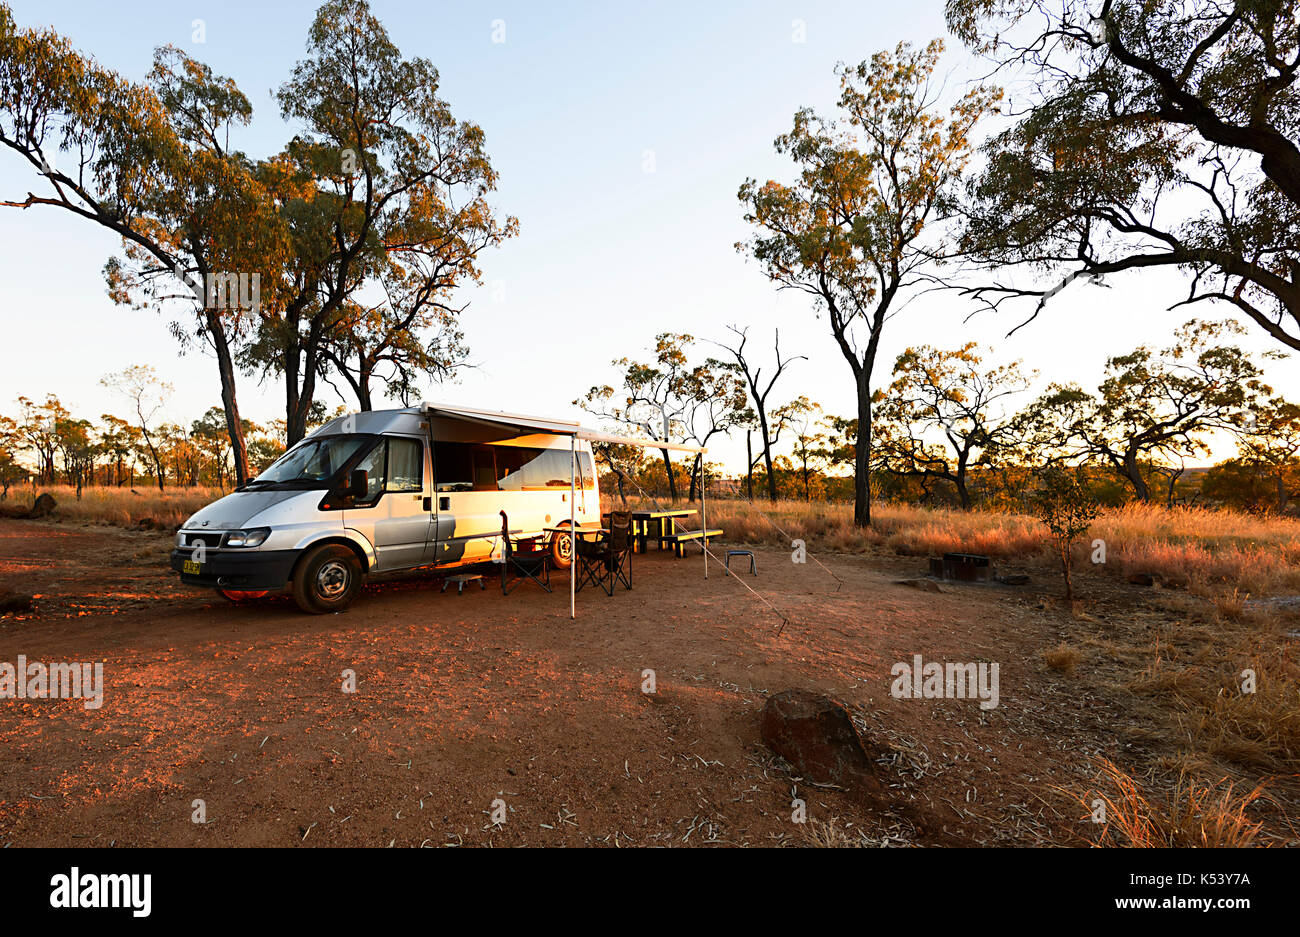 Ford Transit campervan bush camping in Porcupine Gorge National Park, Queensland, QLD, Australia - Stock Image